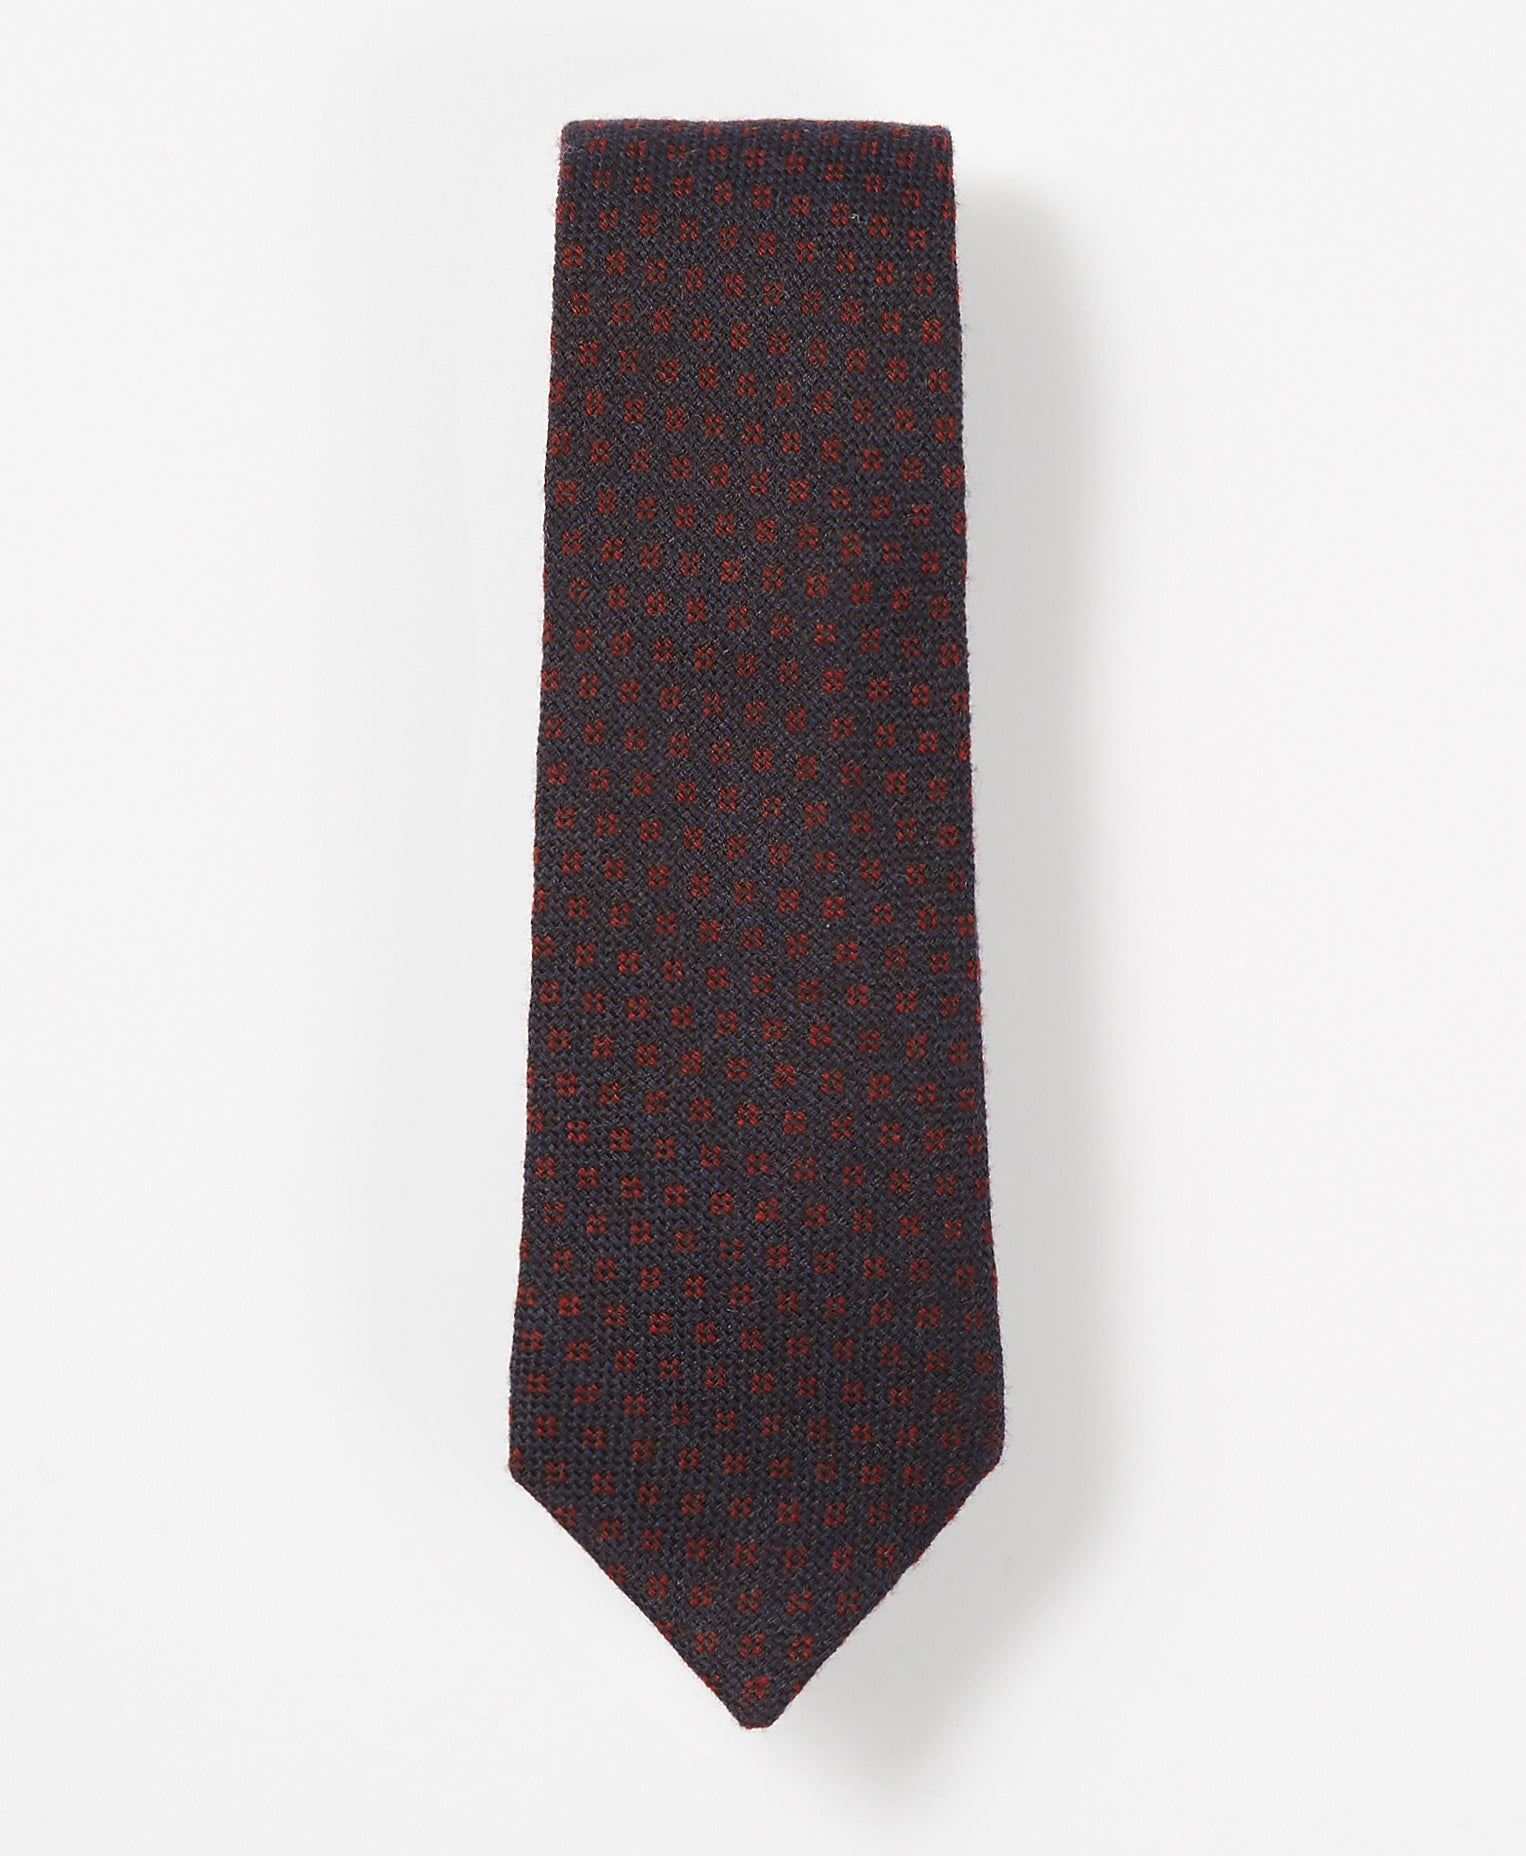 The Collector Necktie